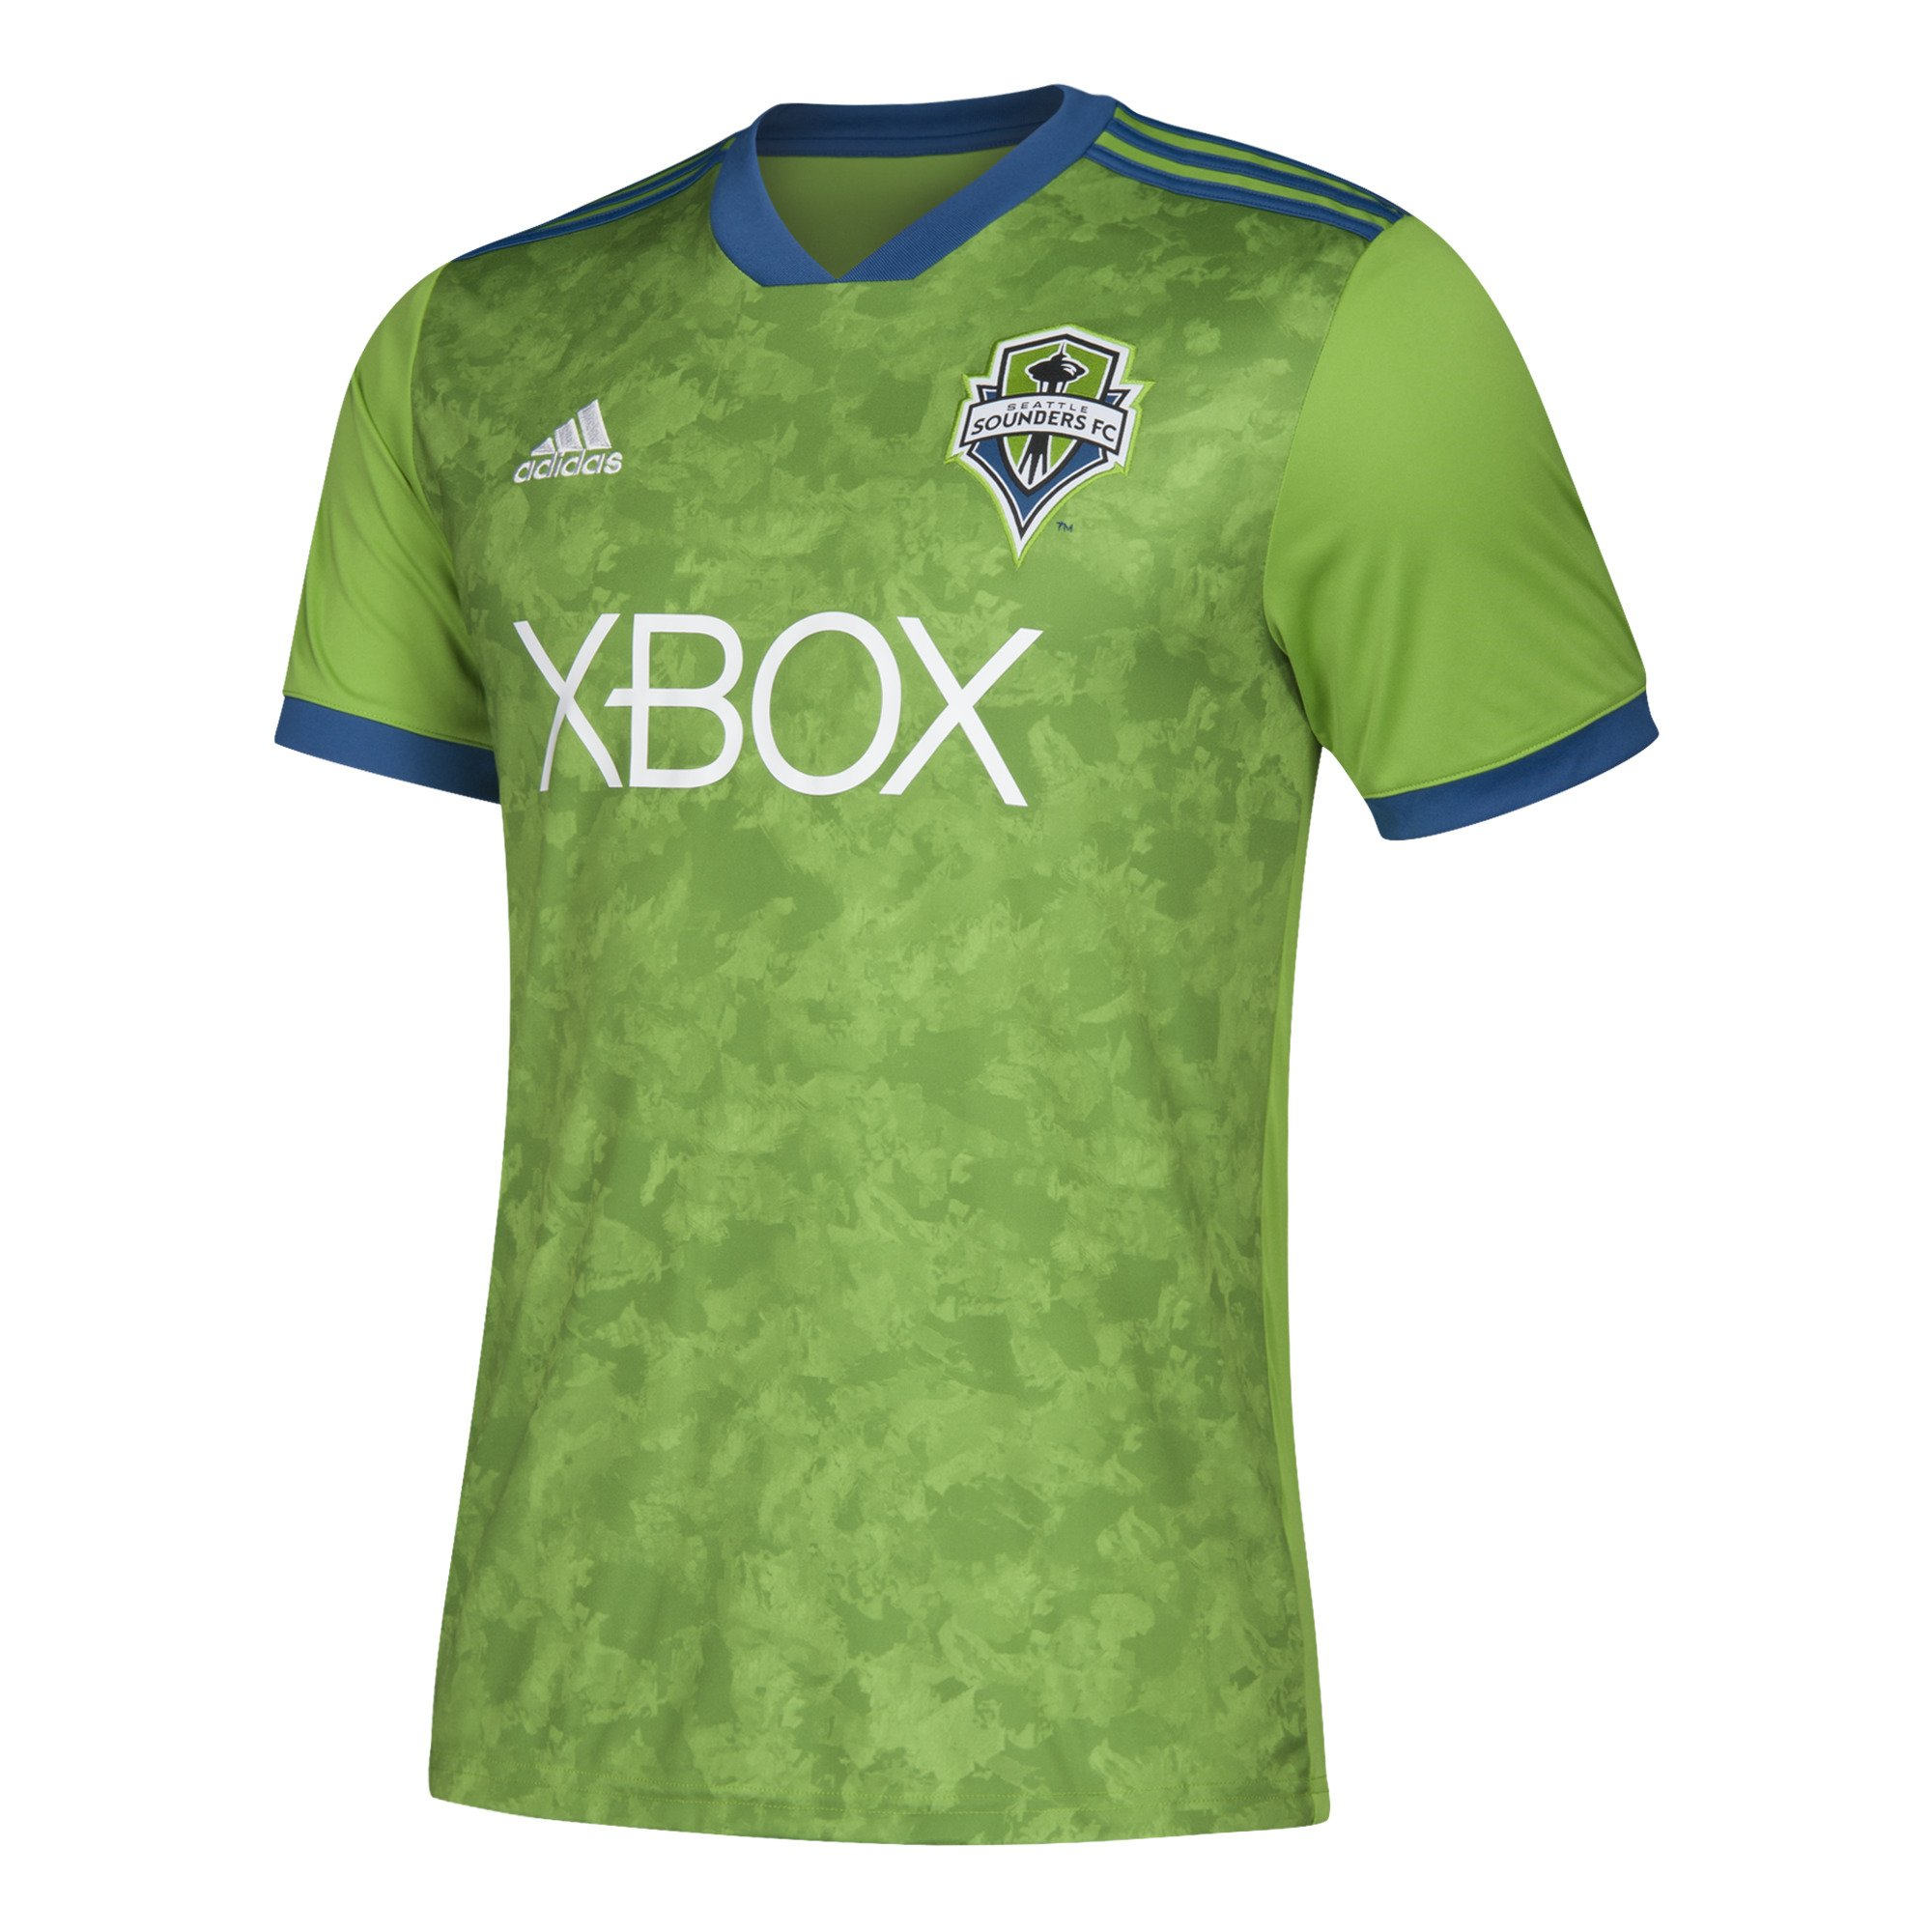 c73ec171 Get Quotations · adidas Seattle Sounders FC Jersey Replica Home Soccer  Jersey